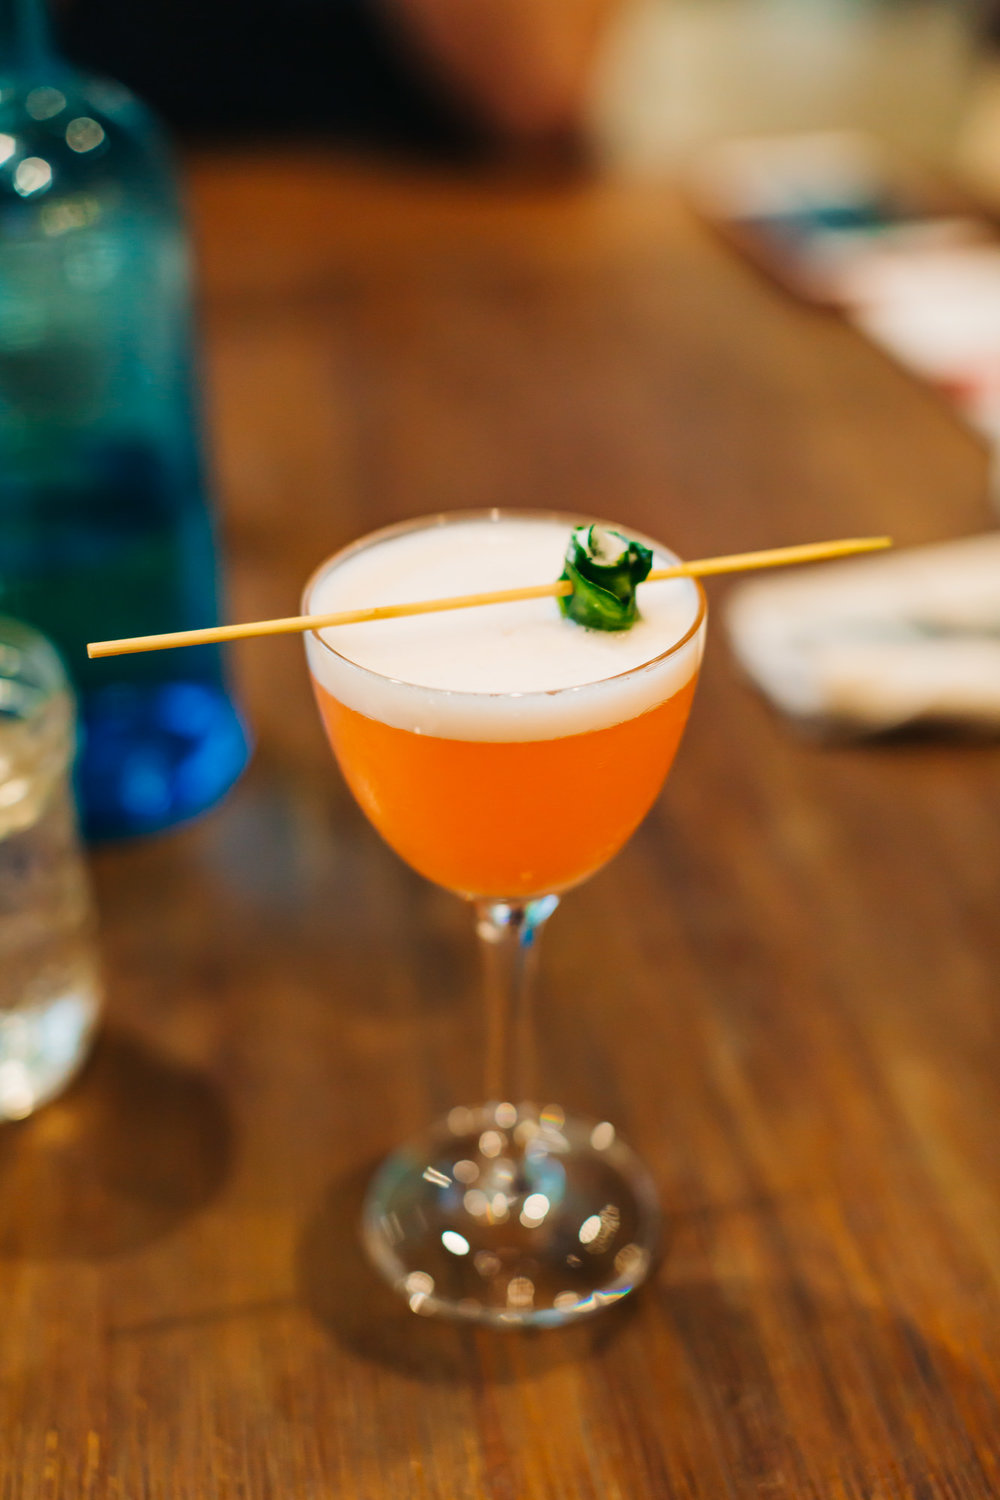 The Perfect Pear - Eau Claire Equinox Vodka, Aperol Lemon Juice, Simple Syrup, Egg Whites